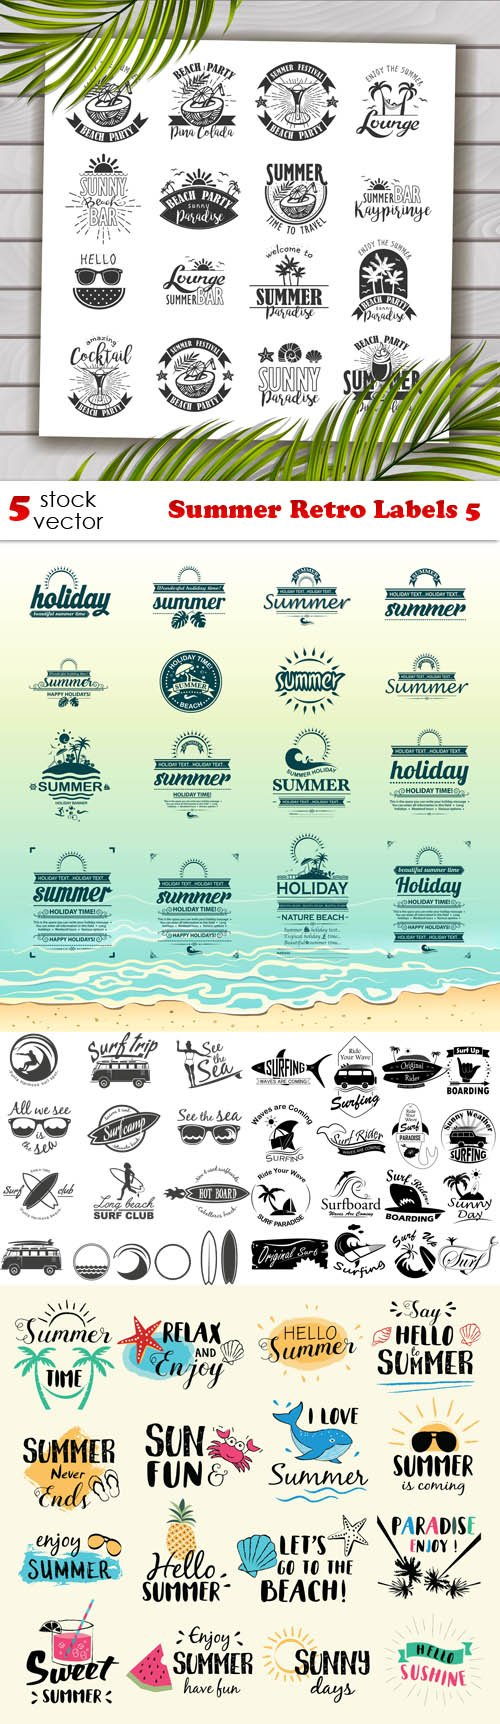 Vectors - Summer Retro Labels 5